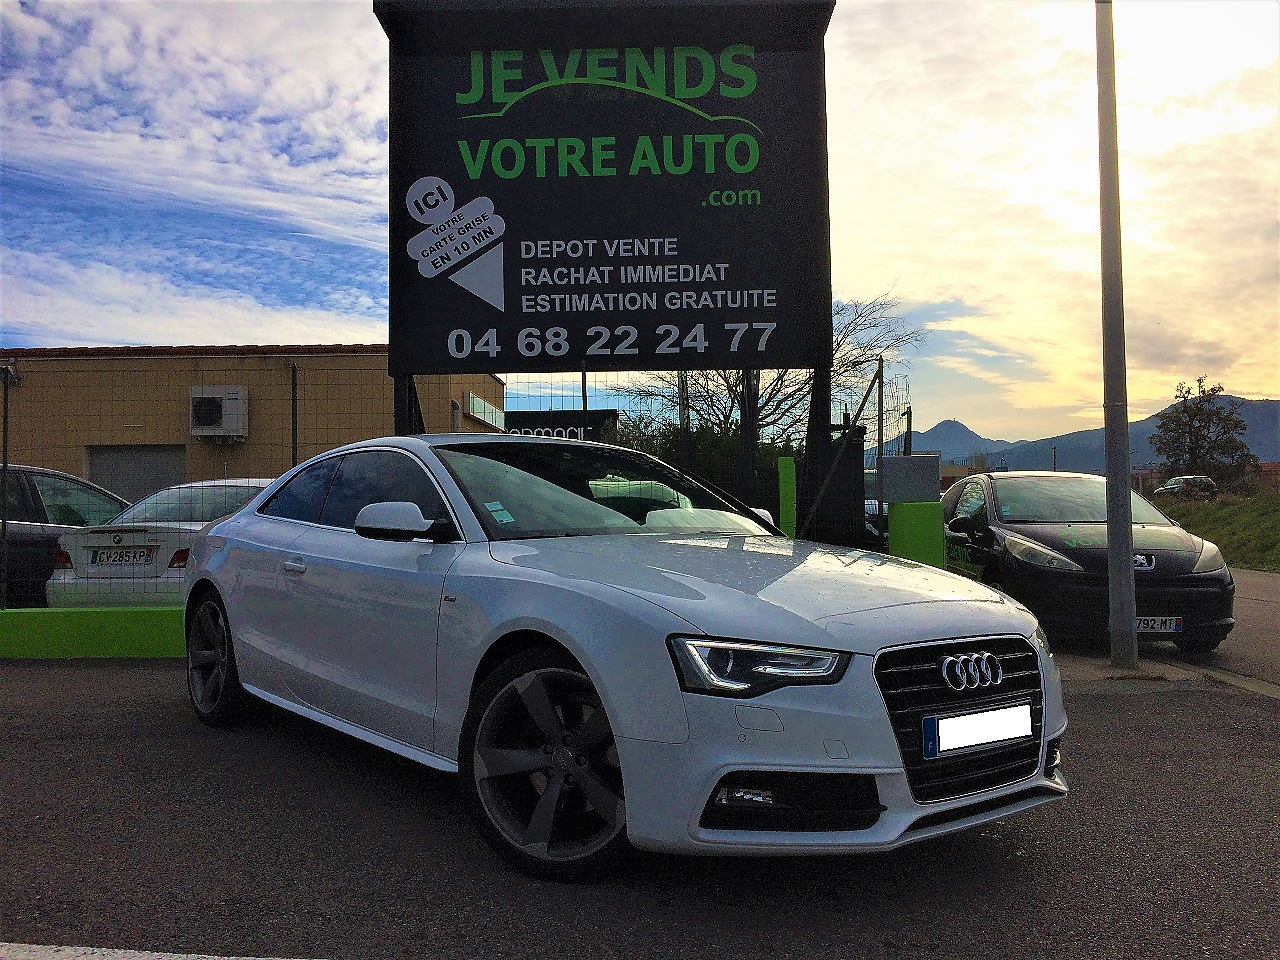 voiture audi a5 2 0 tdi 177ch s line a5 i ph2 occasion diesel 2014 75200 km 23224. Black Bedroom Furniture Sets. Home Design Ideas